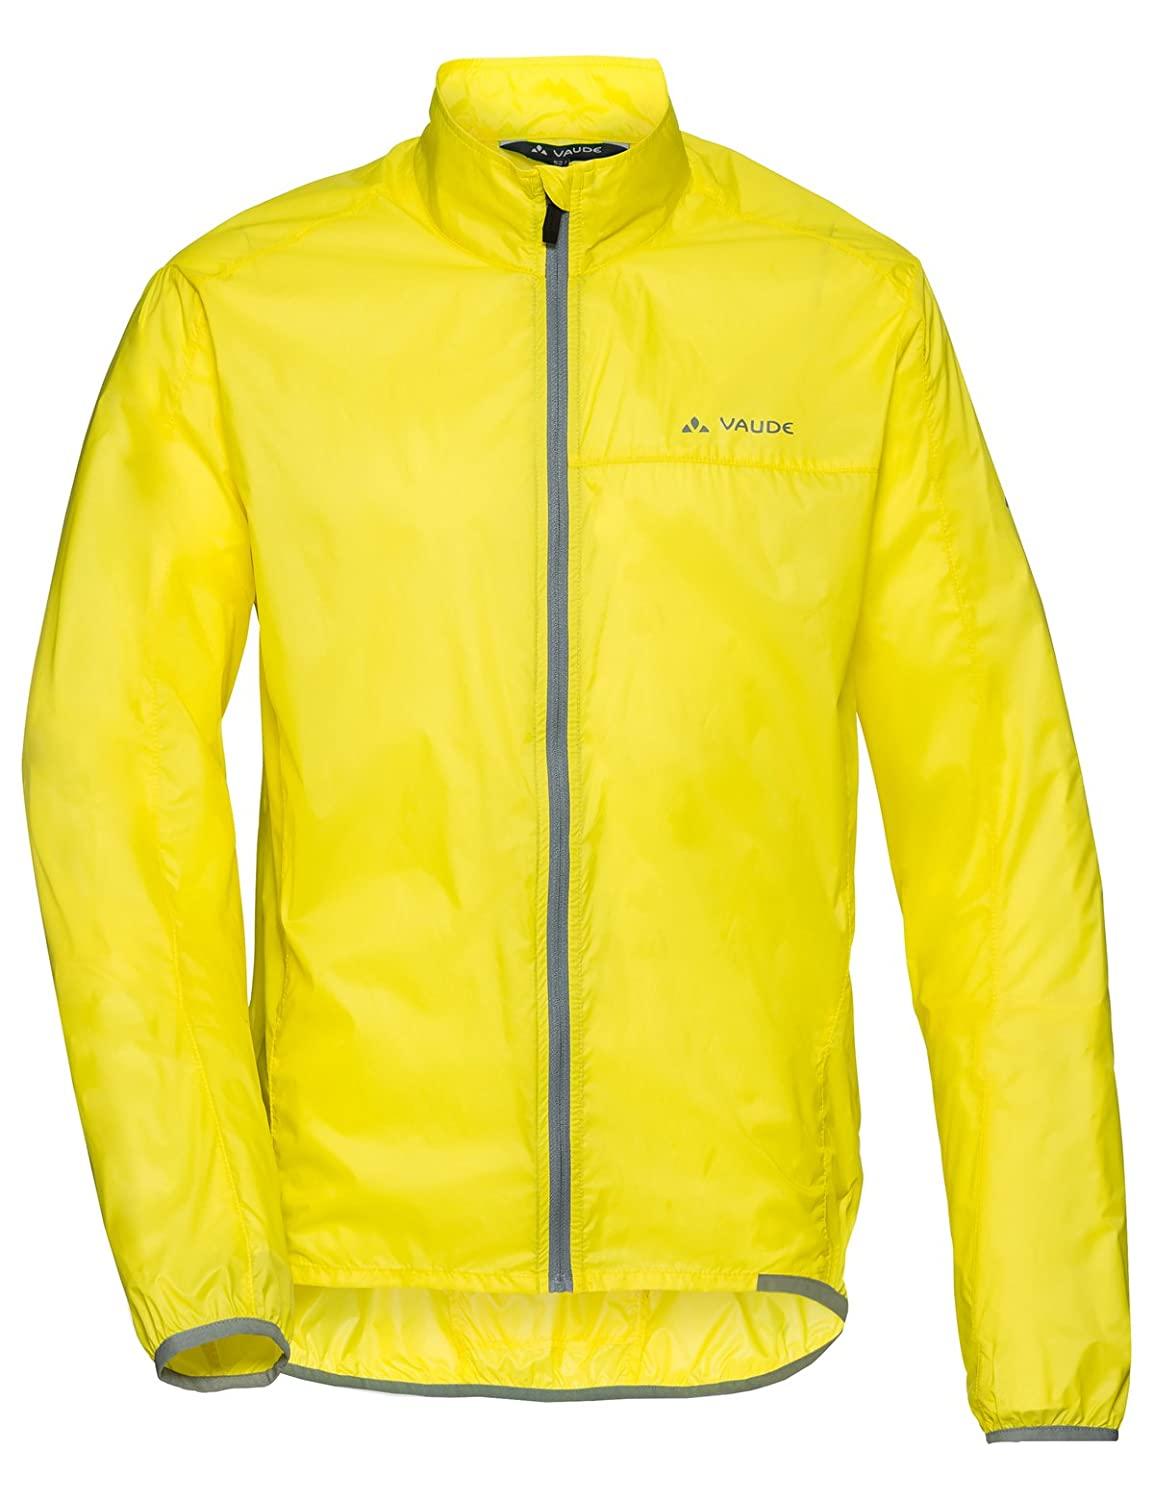 TALLA L. VAUDE Men's Air Jacket III Chaqueta, Hombre